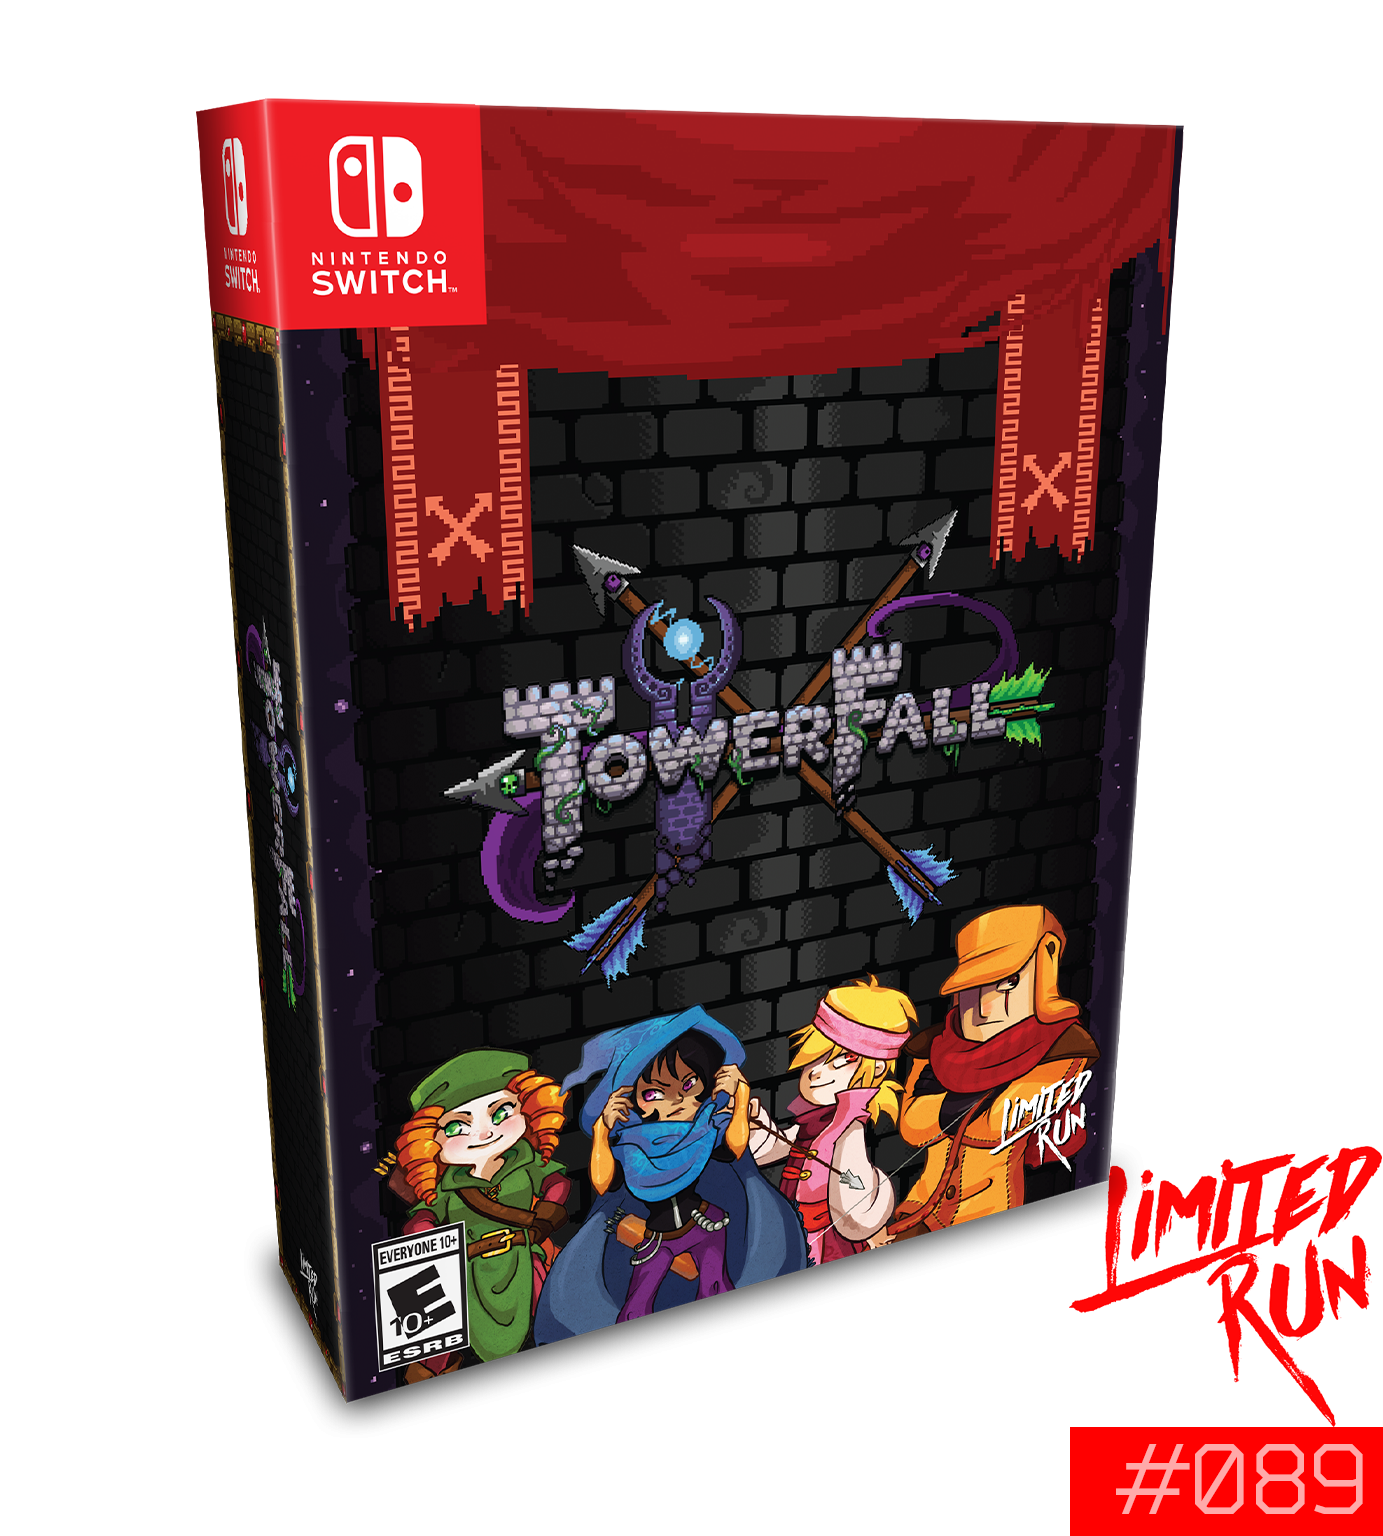 TowerFall Collector's Edition SWITCH